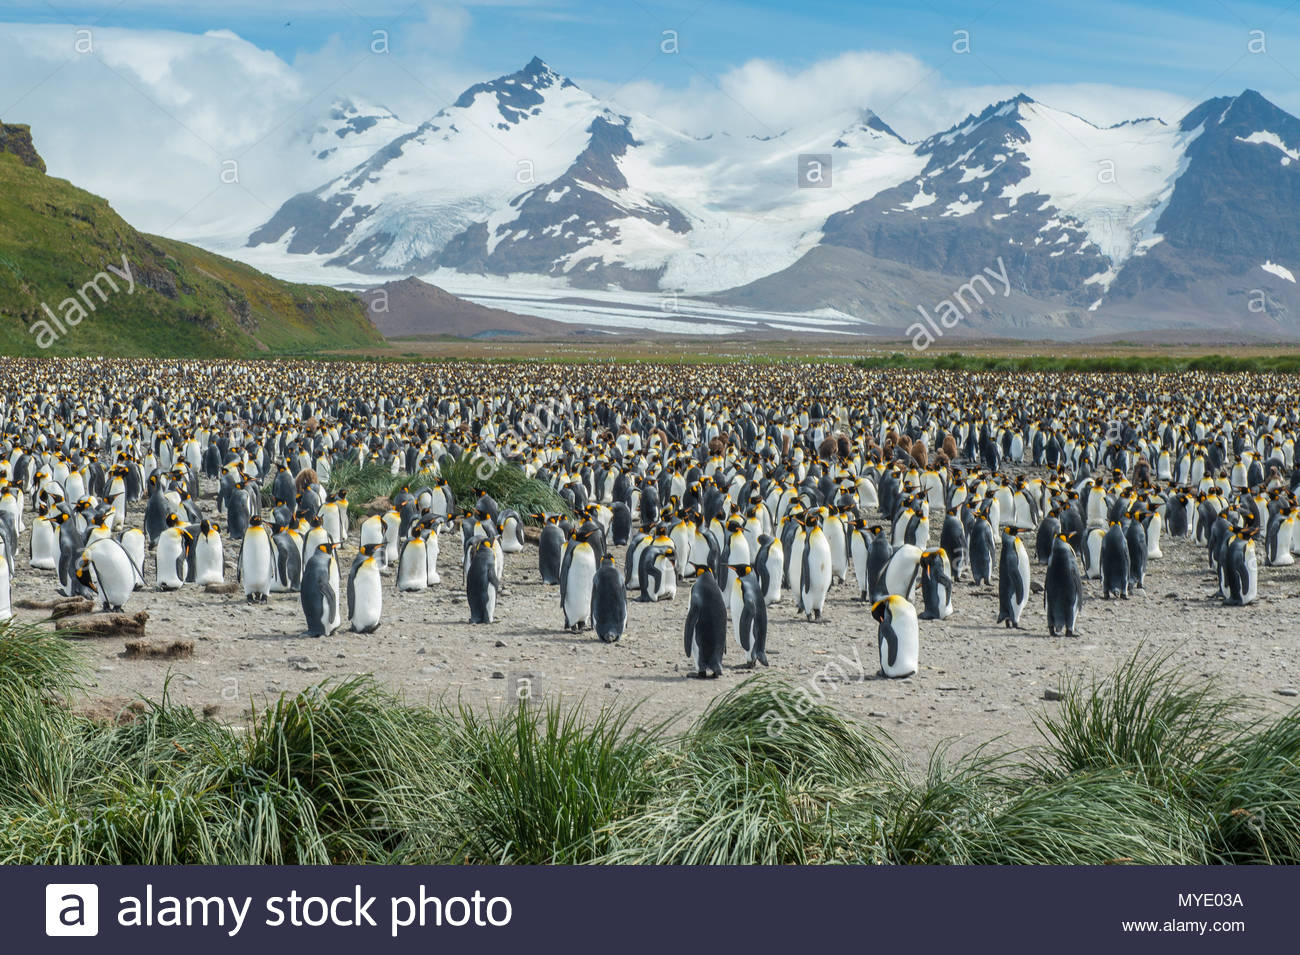 A large King penguin colony rrosts in a mountainous valley. - Stock Image